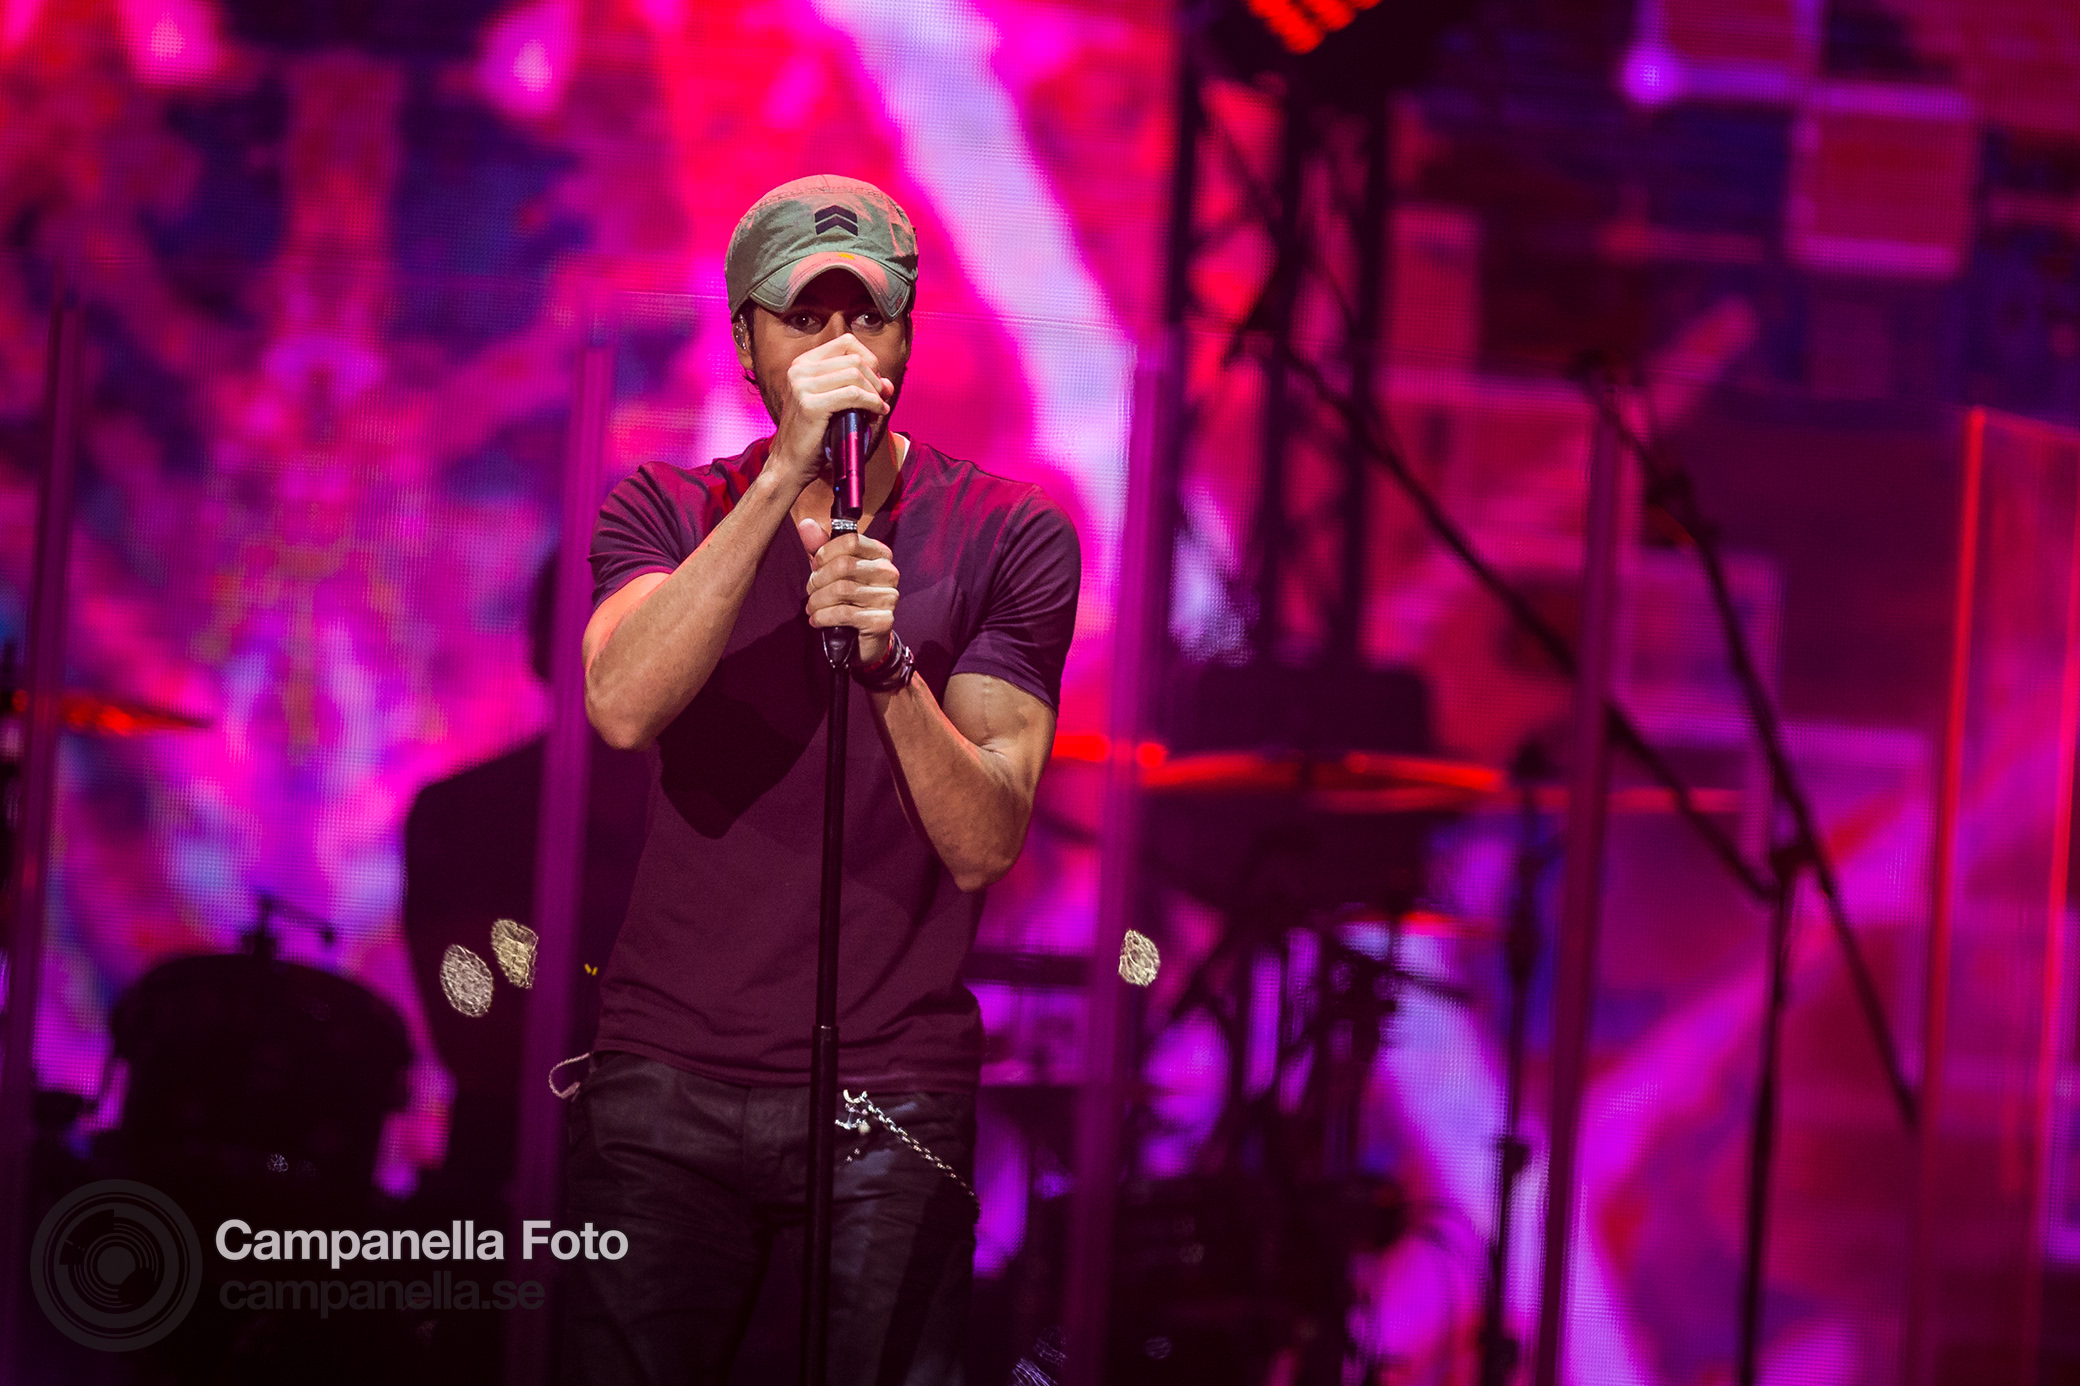 Enrique Iglesias performs in Stockholm - Michael Campanella Photography